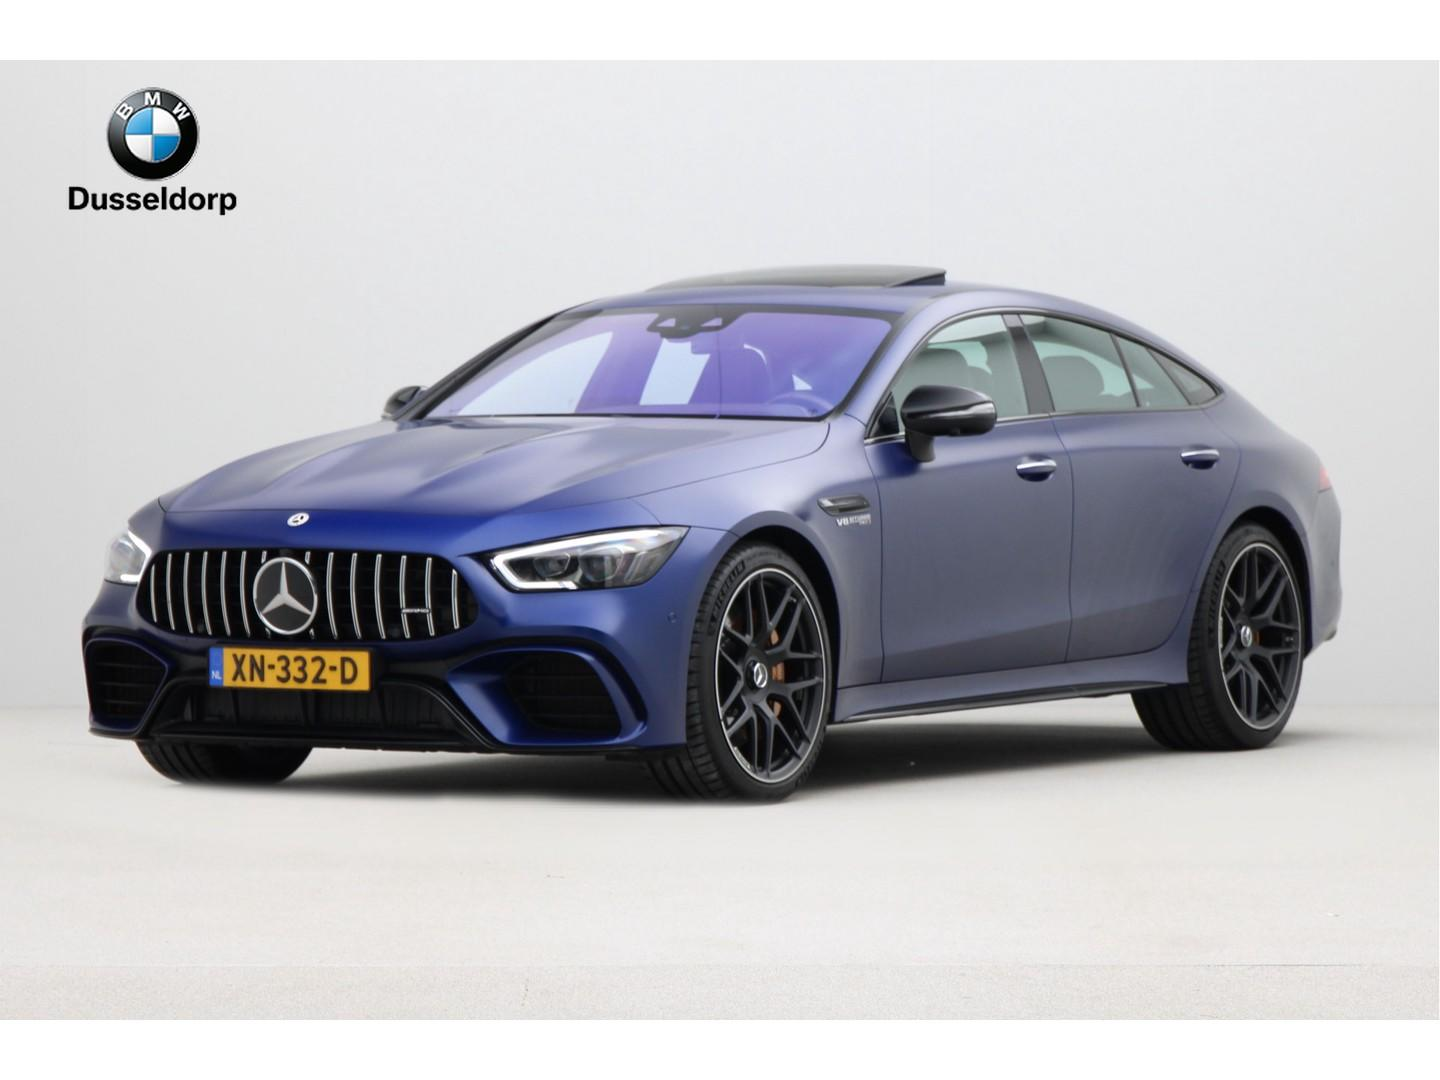 Mercedes-benz Amg gt 4-door coupe 63 s 4matic+ edition 1